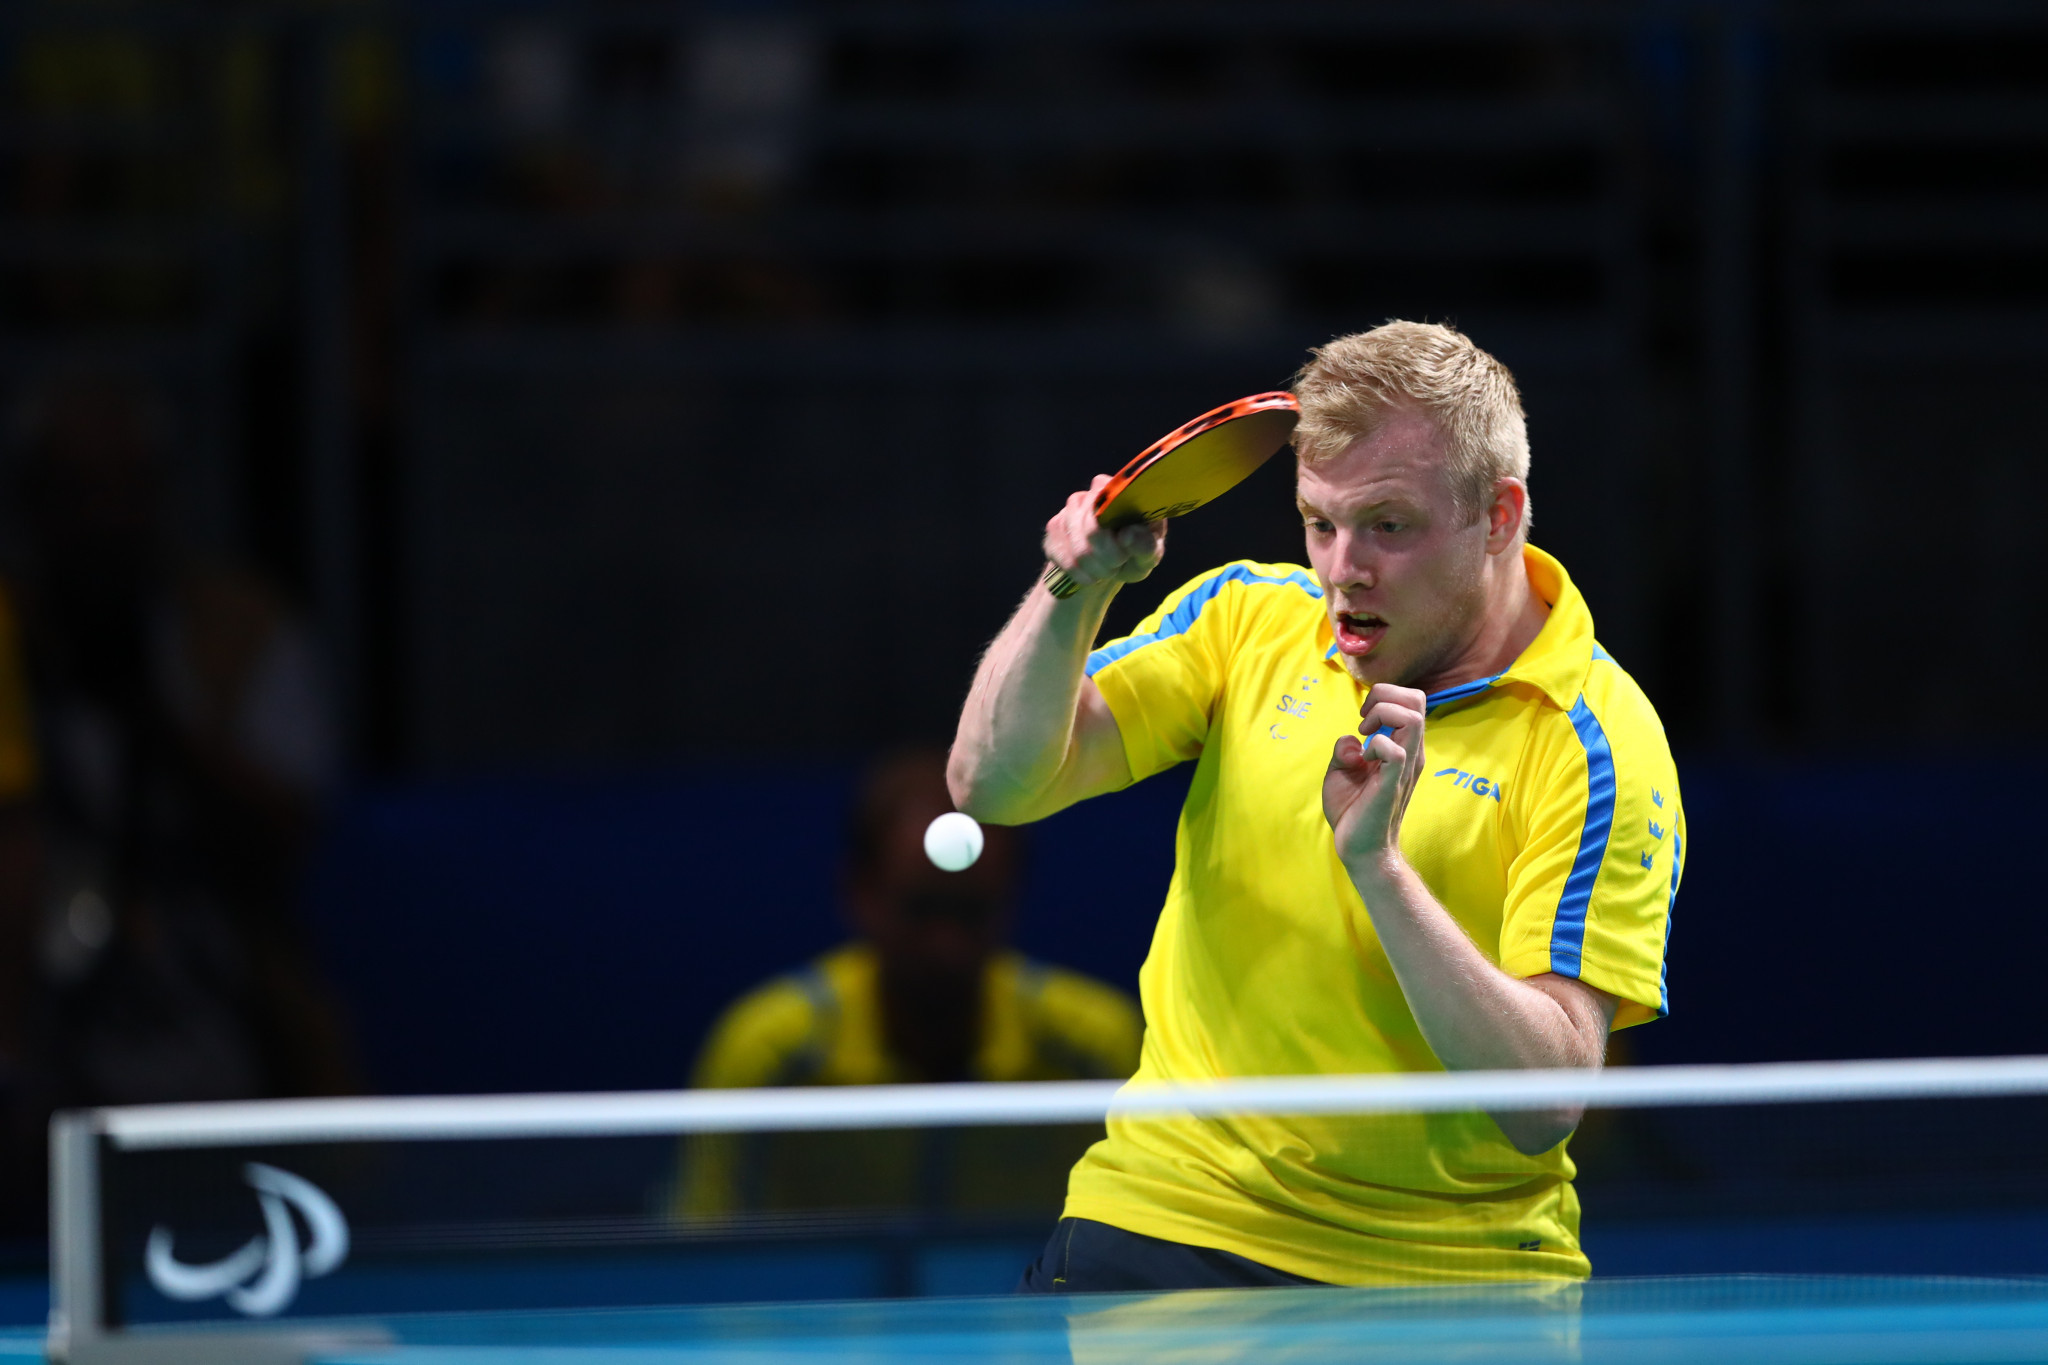 Sweden's Paralympic team halved from Rio 2016 but strong on experience